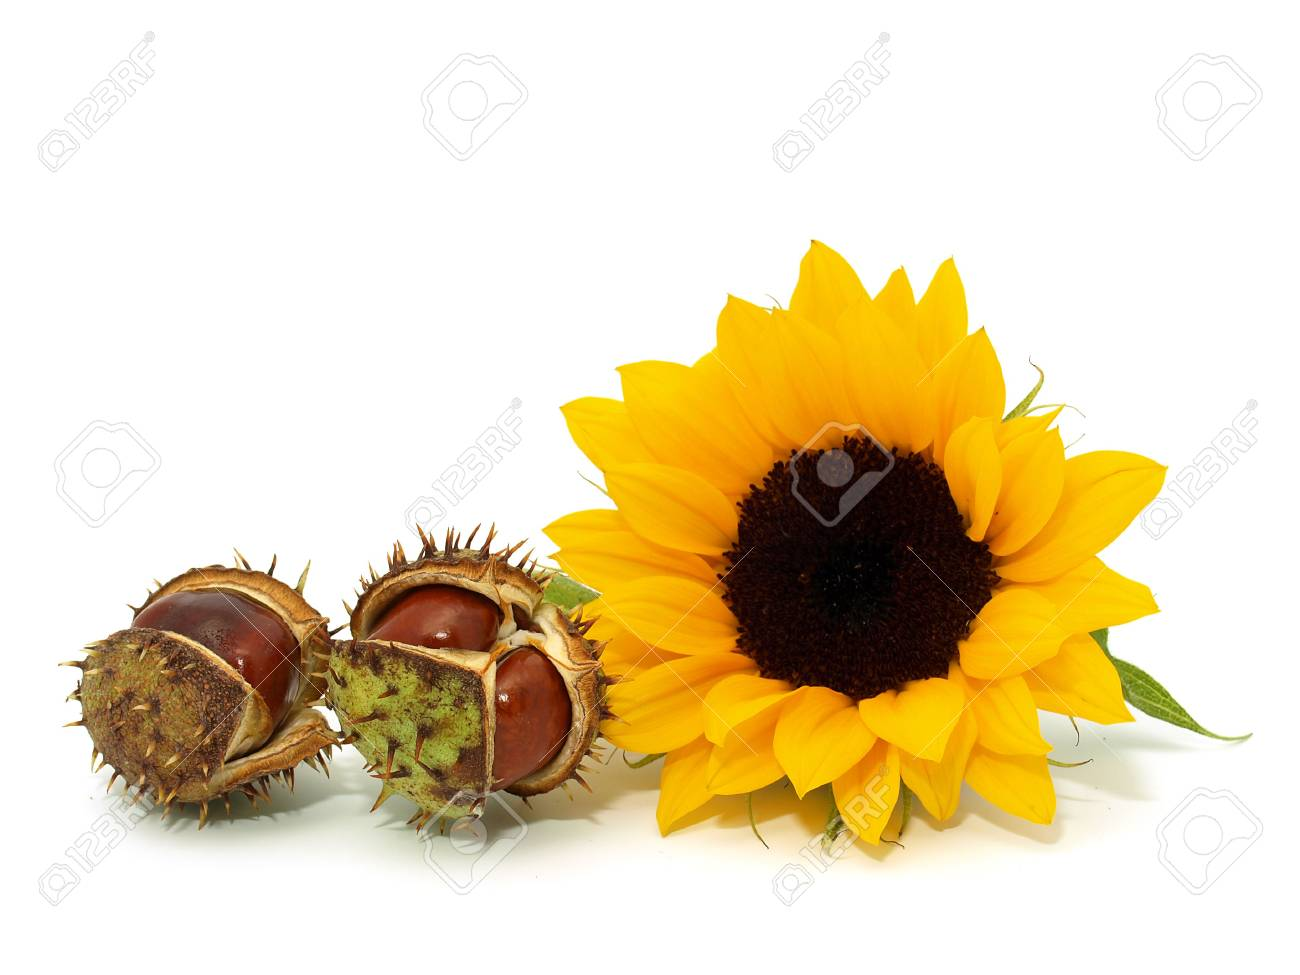 Sunflower with chestnuts on the white background Stock Photo - 7593157